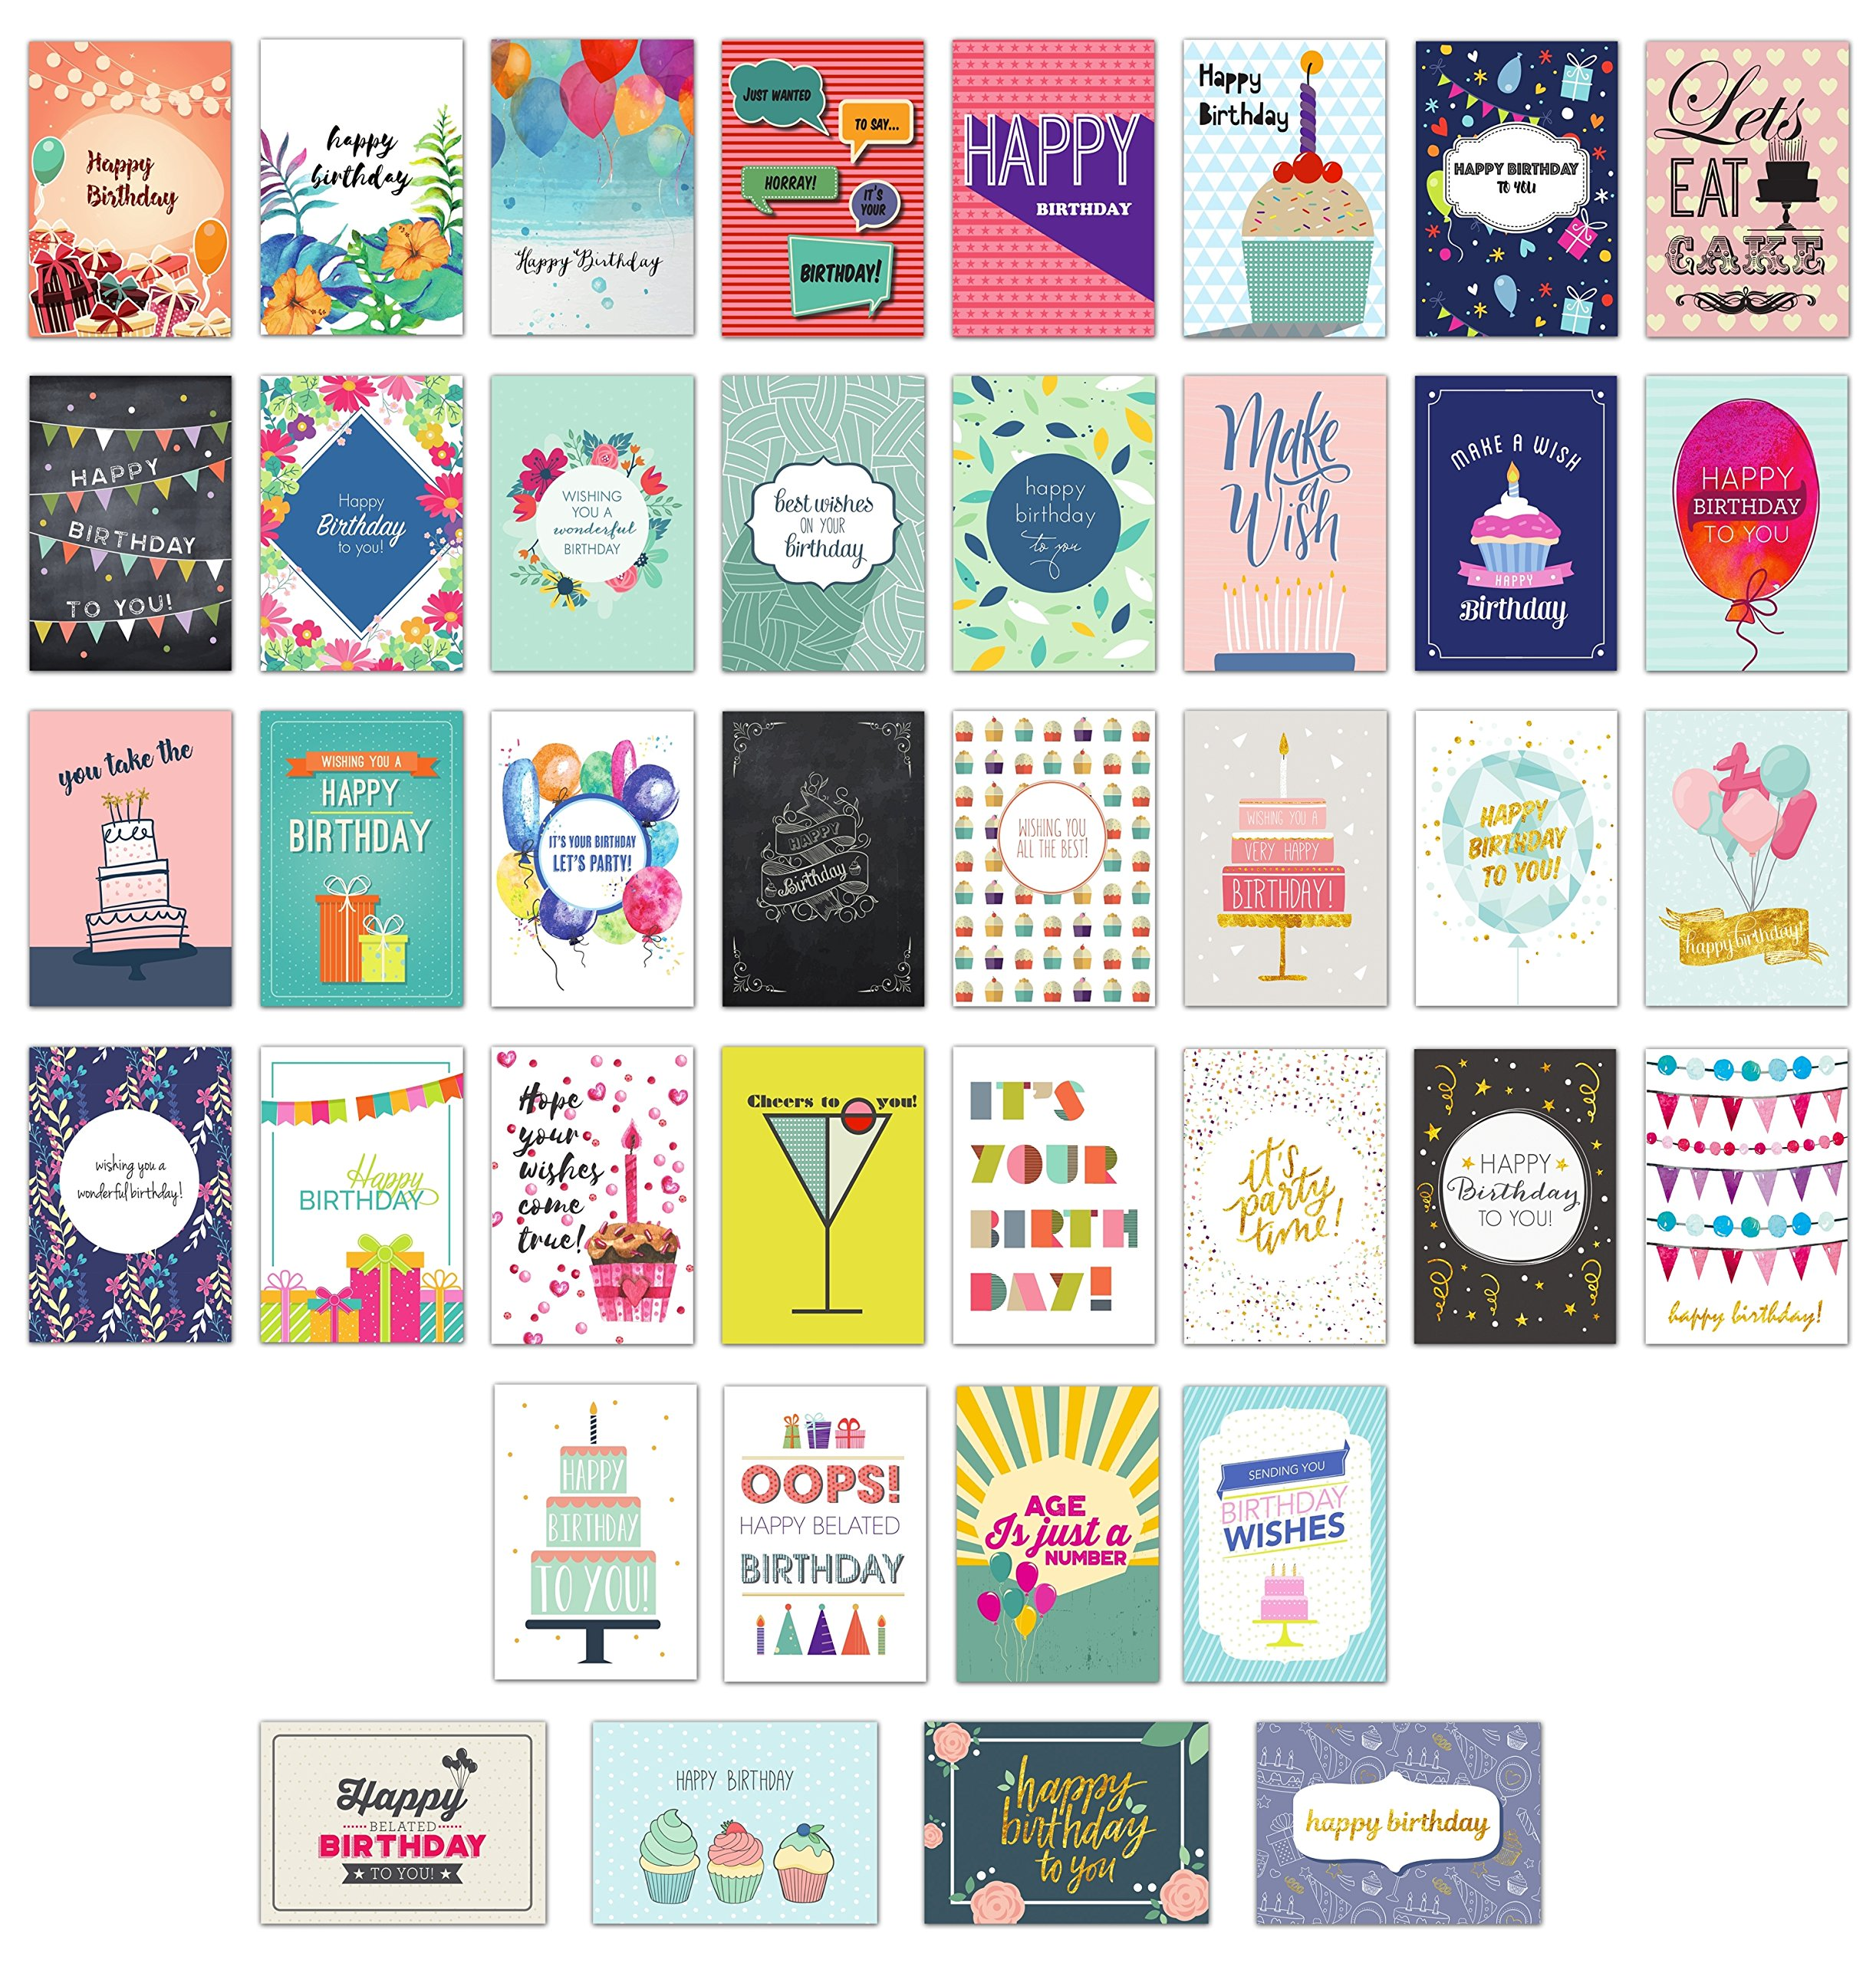 Happy Birthday Cards Bulk Premium Assortment - 40 UNIQUE DESIGNS, GOLD EMBELLISHMENTS, ENVELOPES WITH PATTERNS. The Ultimate Boxed Set of Bday Cards. by Cortesia (Image #1)